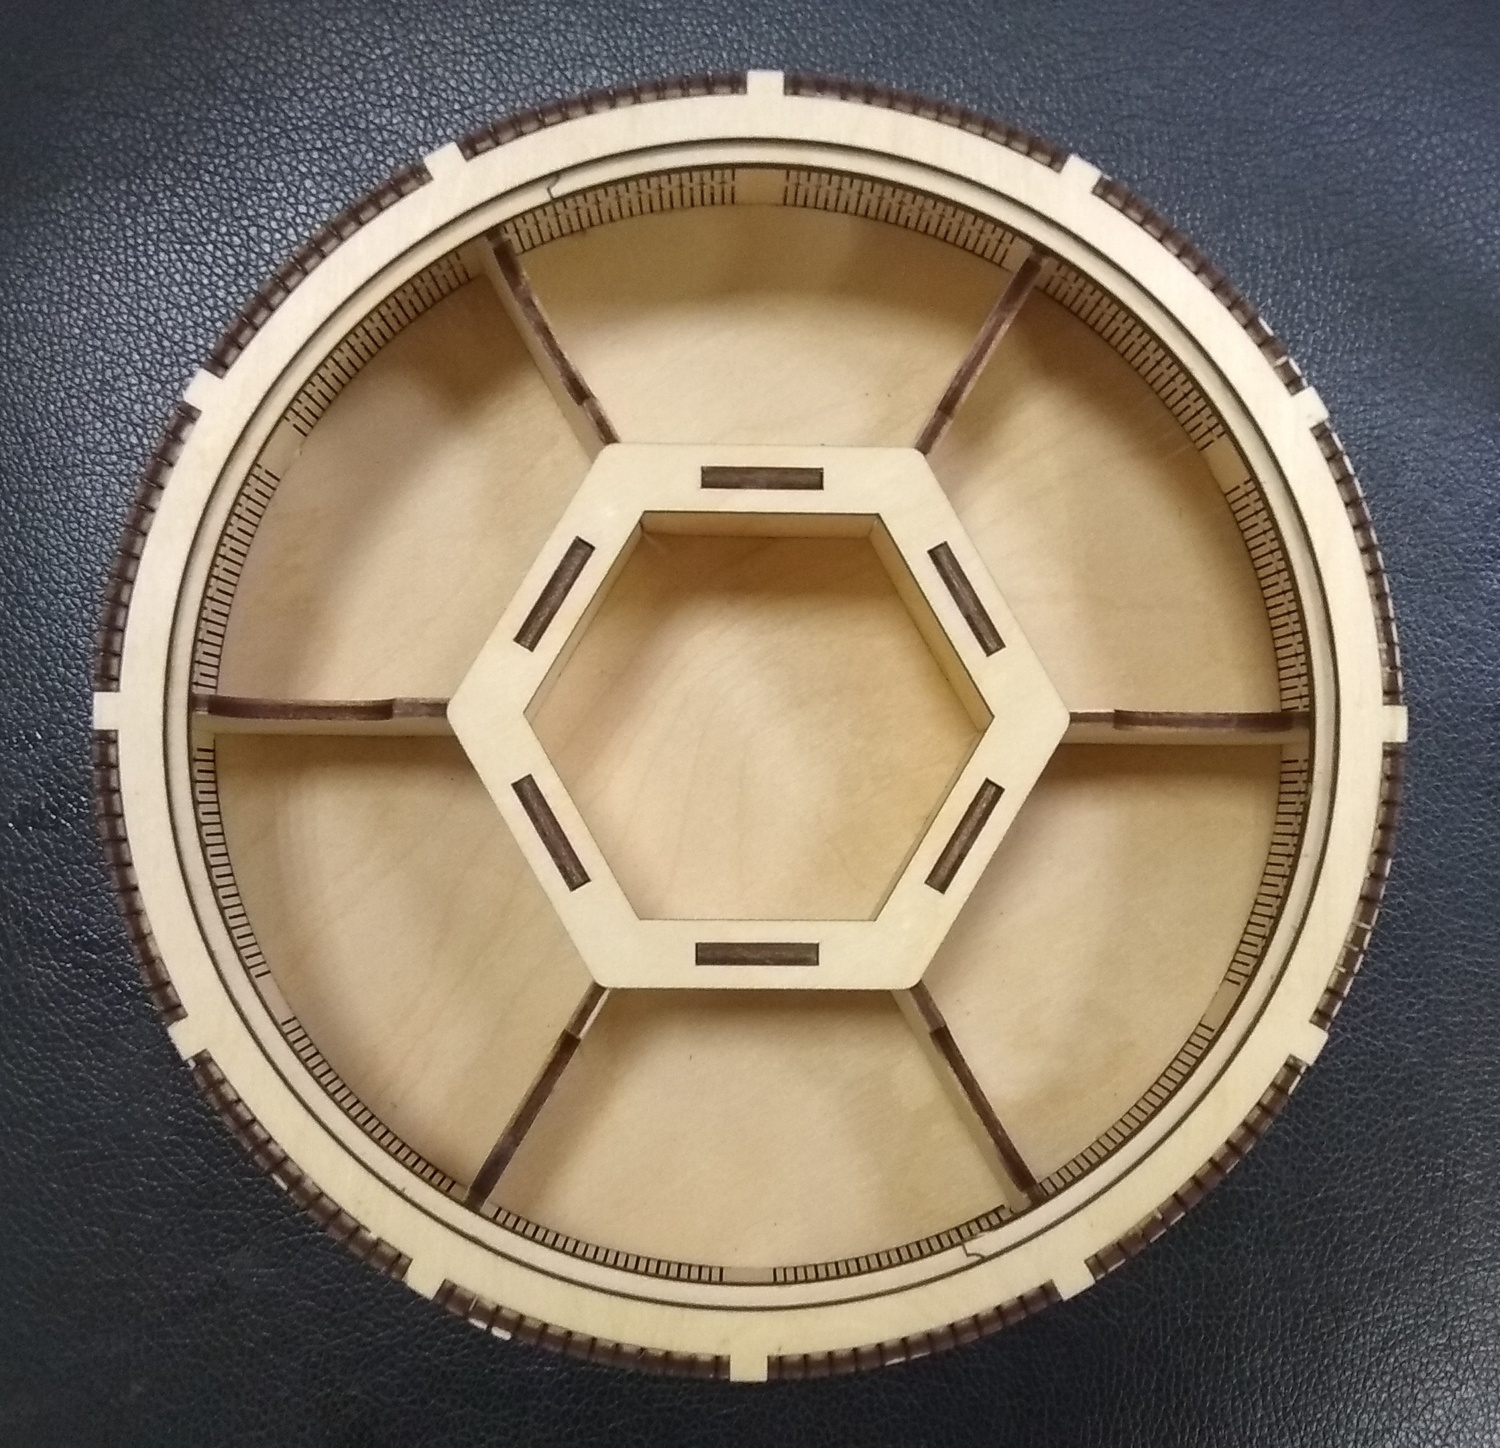 Laser Cut Wooden Round 7 Compartment Box Candy Basket With Lid Free CDR Vectors Art